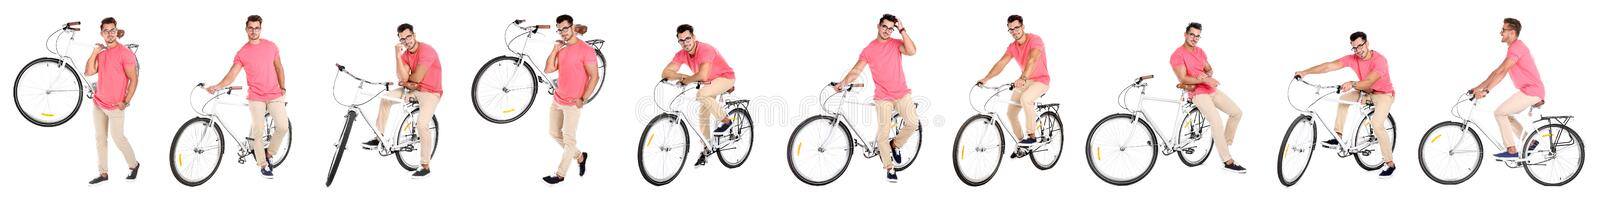 Collage of handsome young man with bicycle. Banner design royalty free stock image